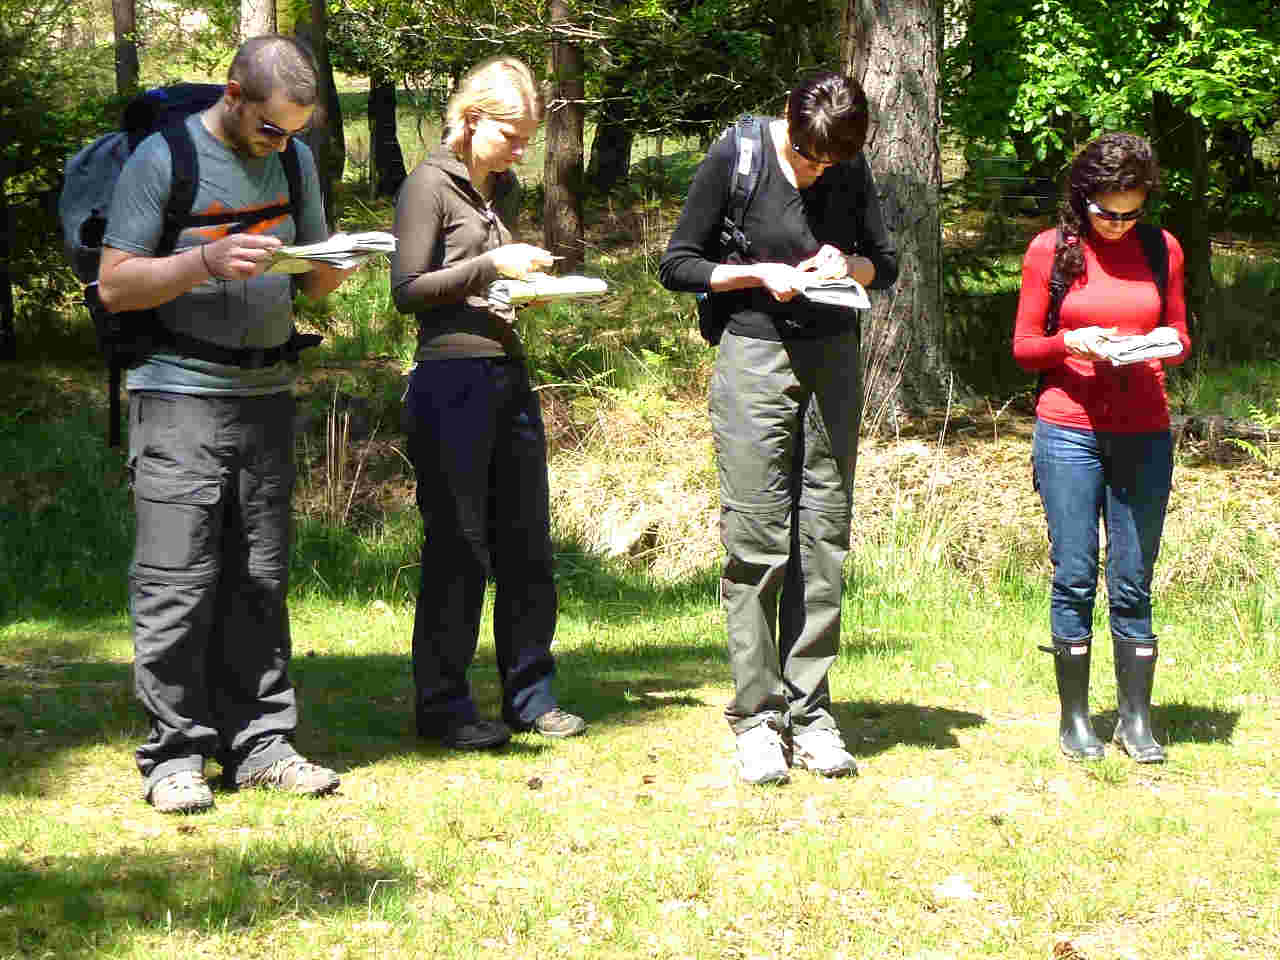 Members of a team enjoy a map reading course as a corporate activity in the New Forest